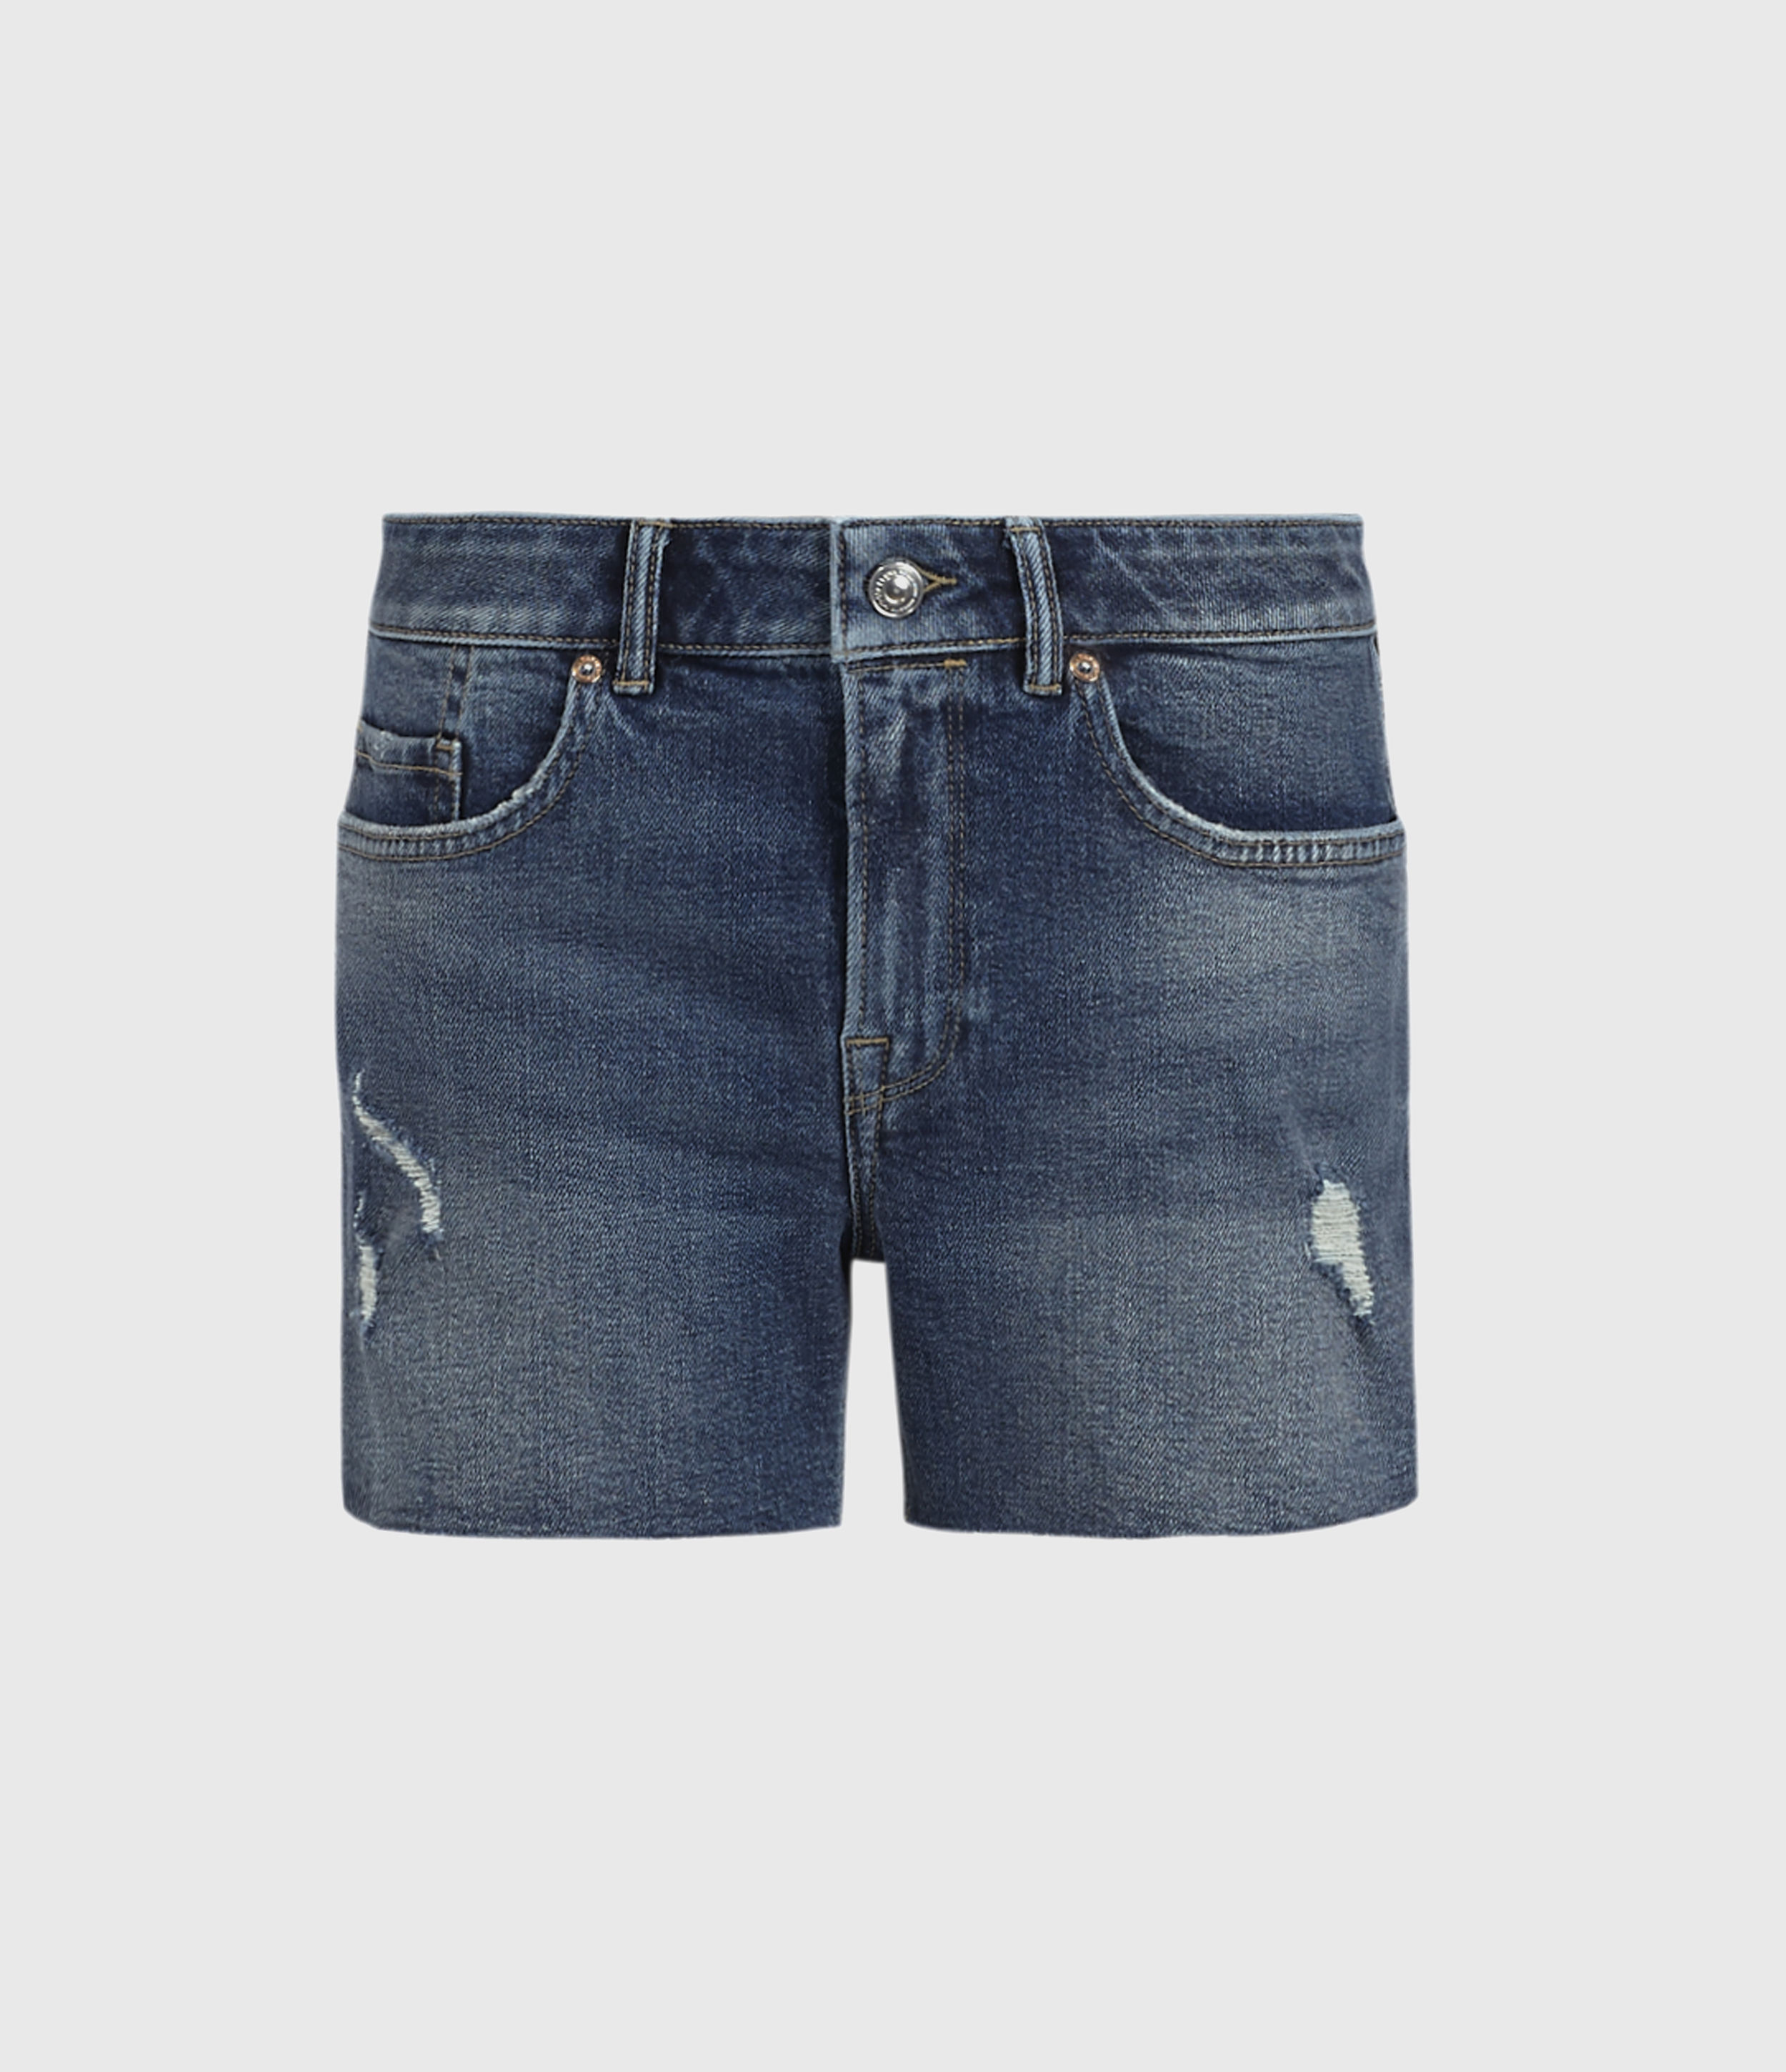 AllSaints Mera Cut Off Denim Shorts